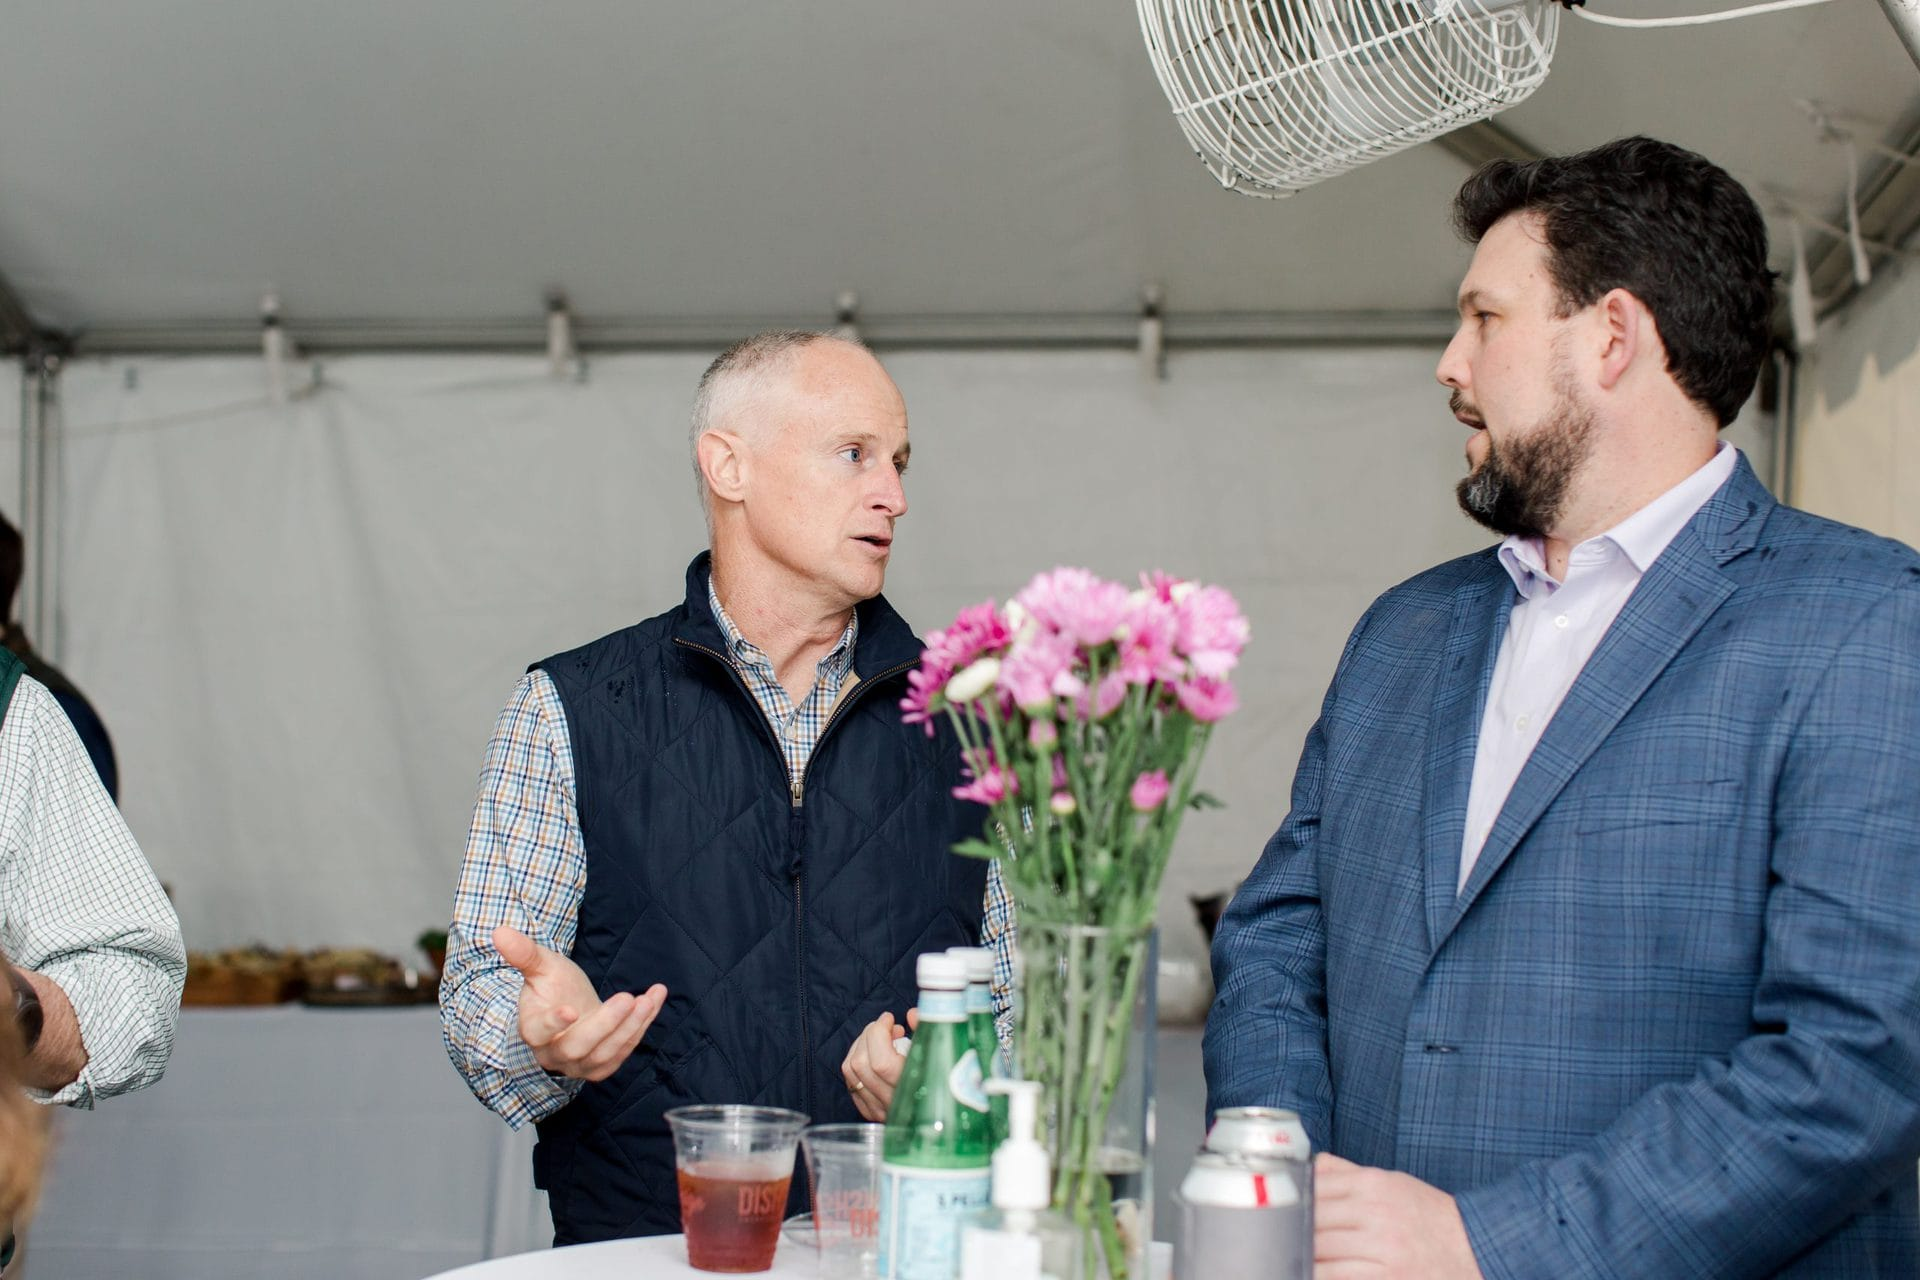 two men speaking at event